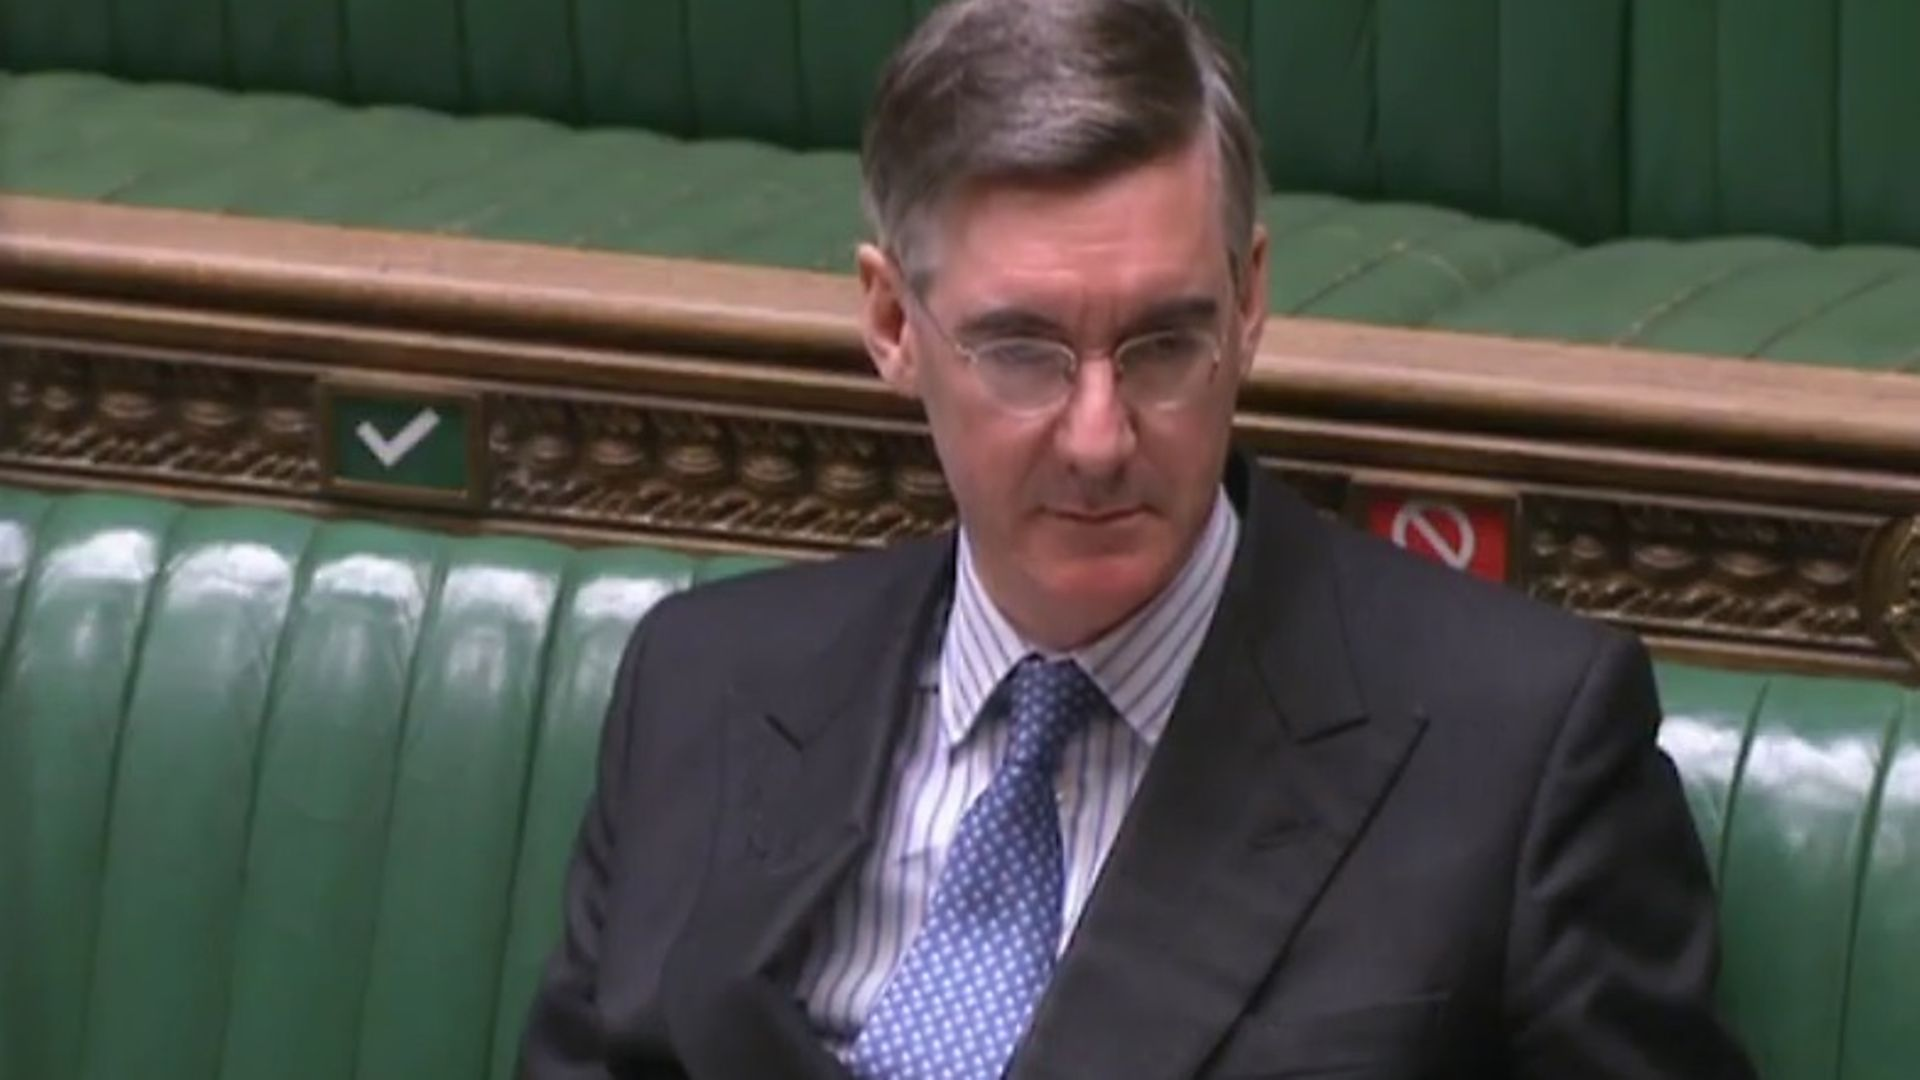 Jacob Rees-Mogg in the House of Commons - Credit: Parliament Live